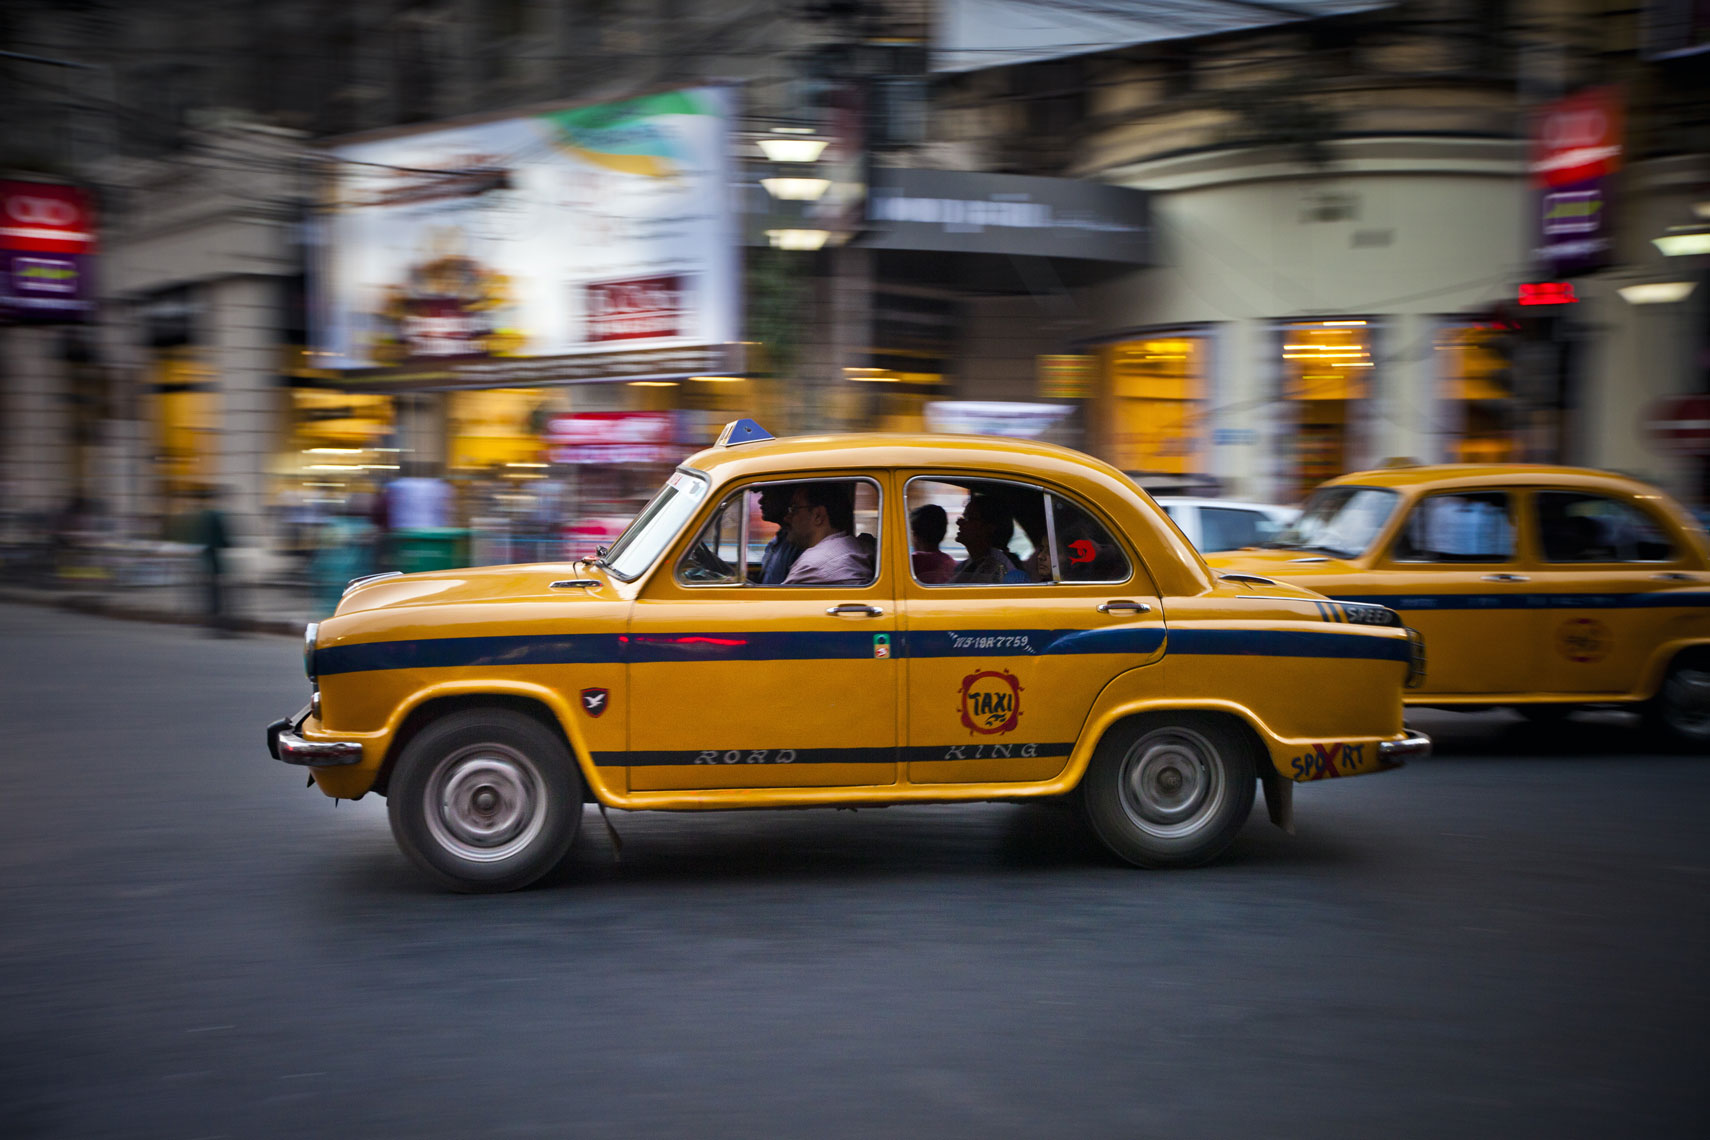 lra_20140206_silkair_calcutta_edited_300DPI_RGB-8433_Taxi